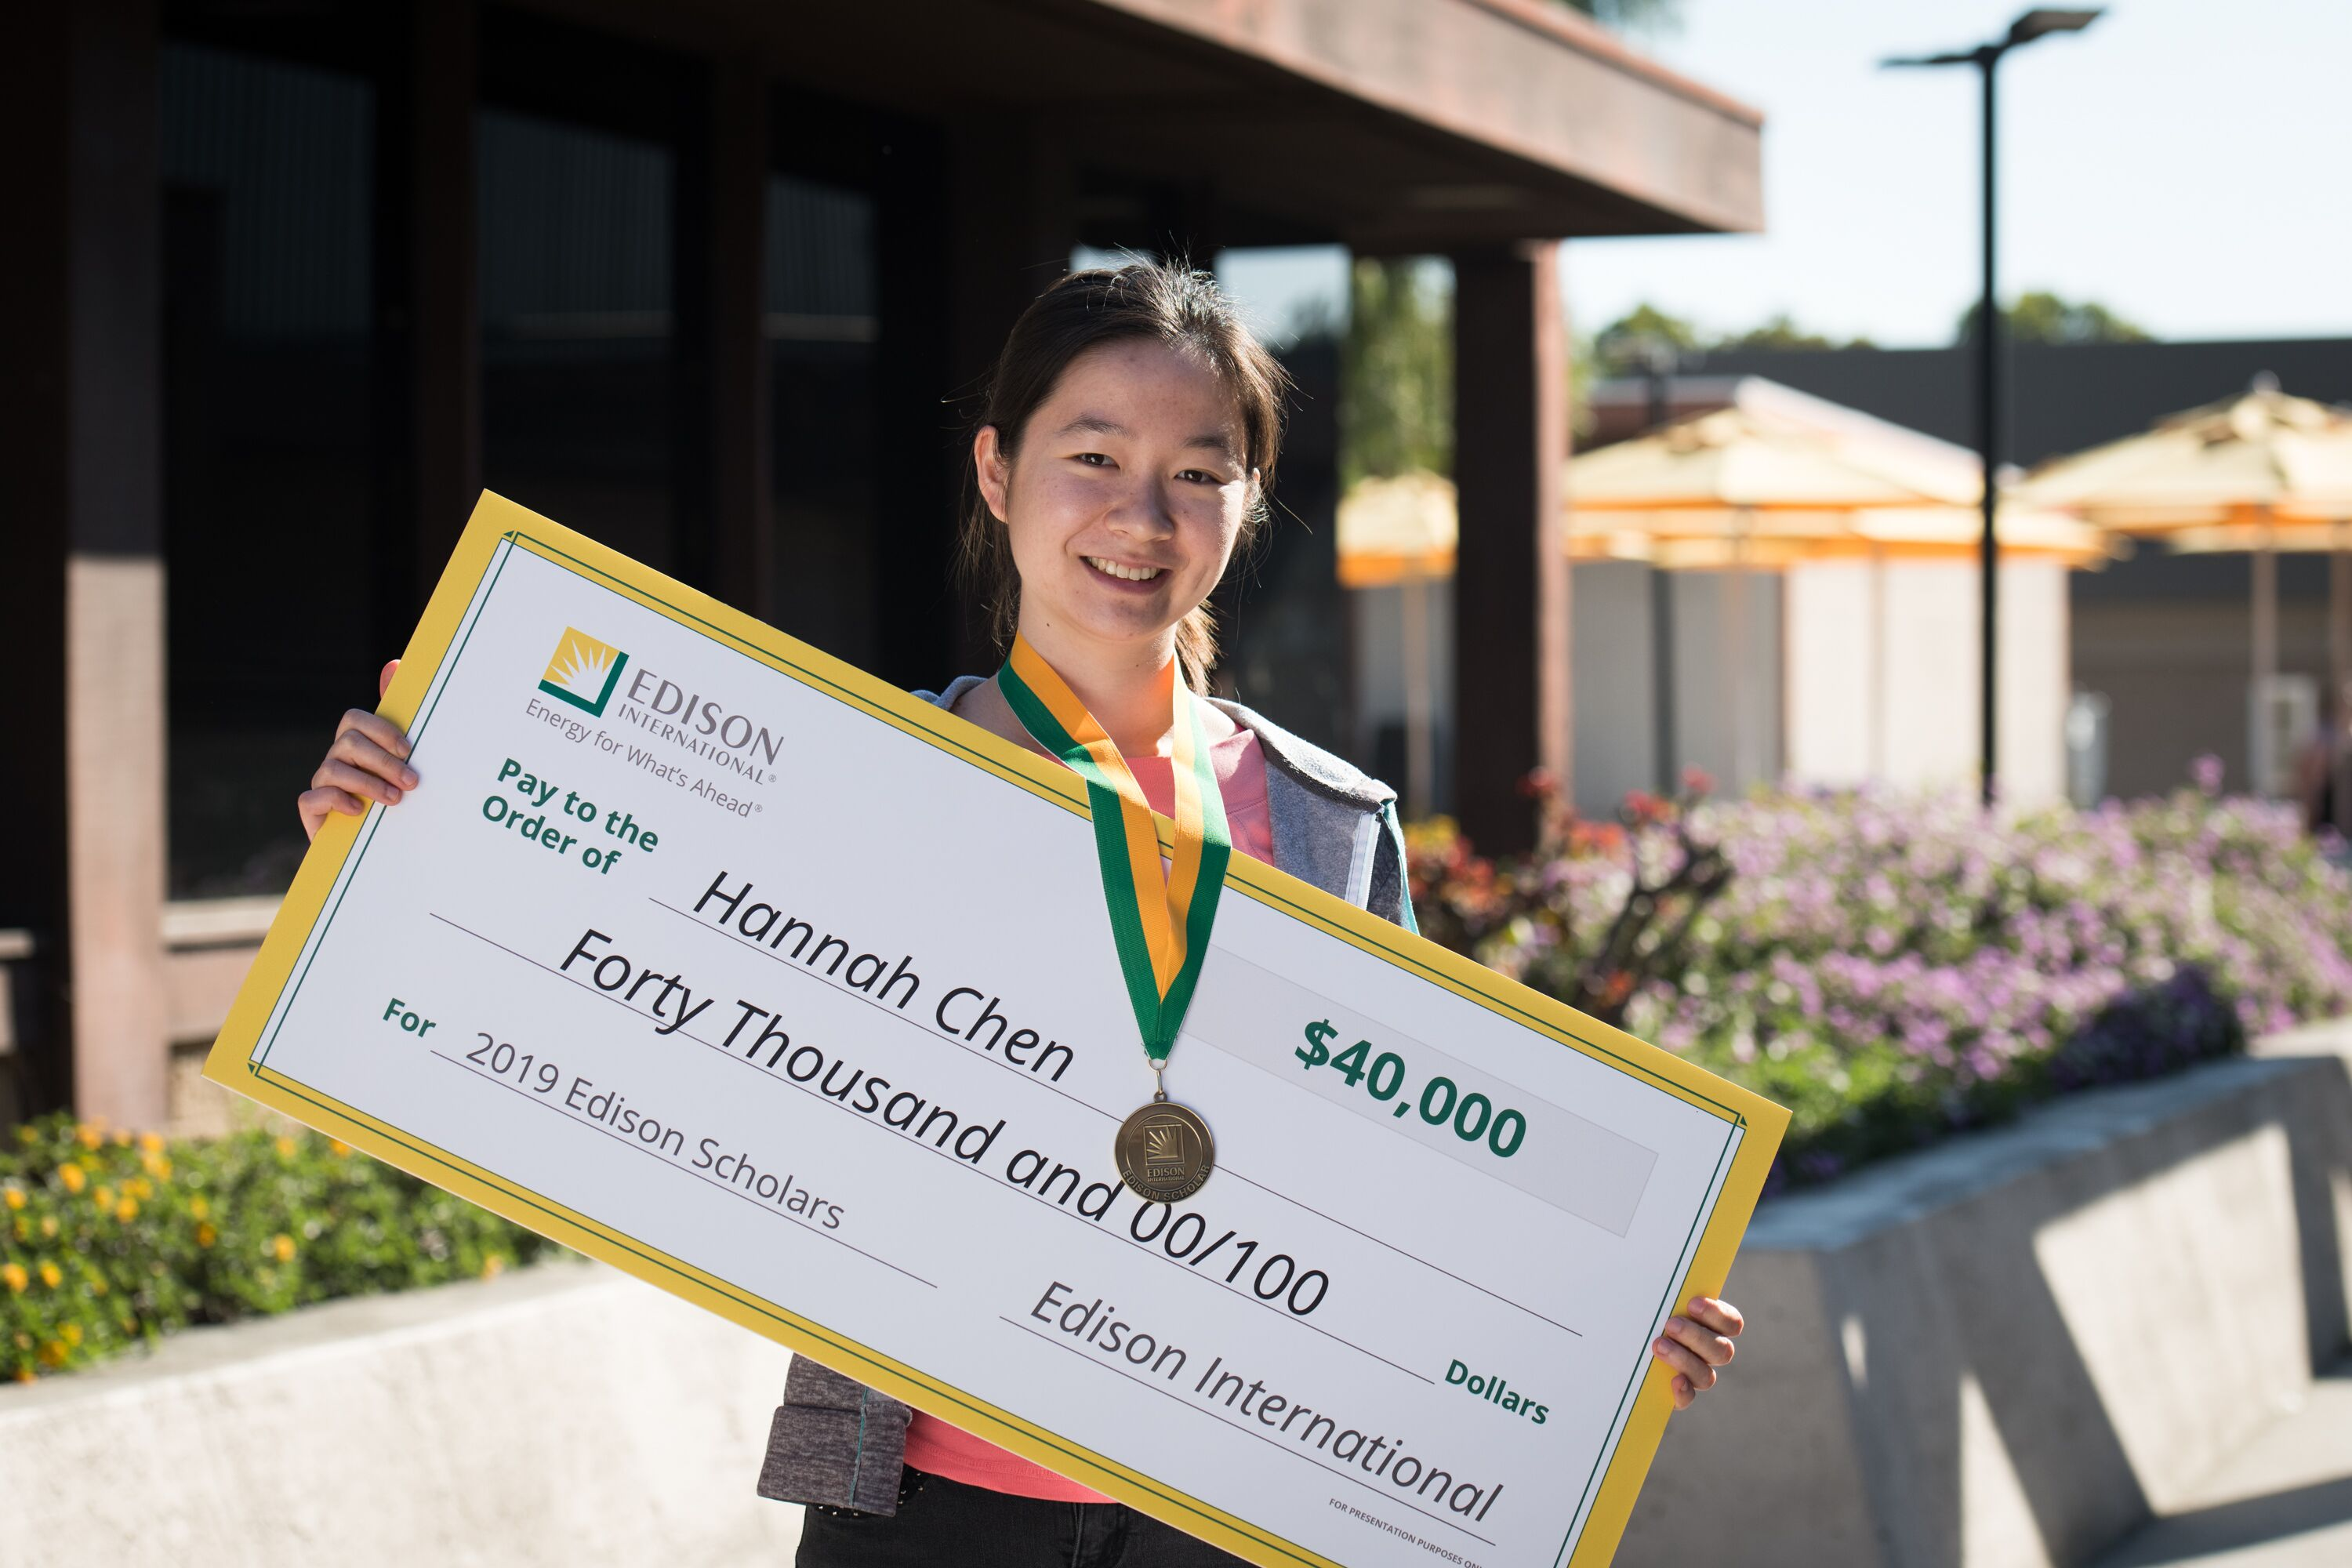 Edison Scholars scholarship winner Hannah Chen want to study computer science at Cal Tech.